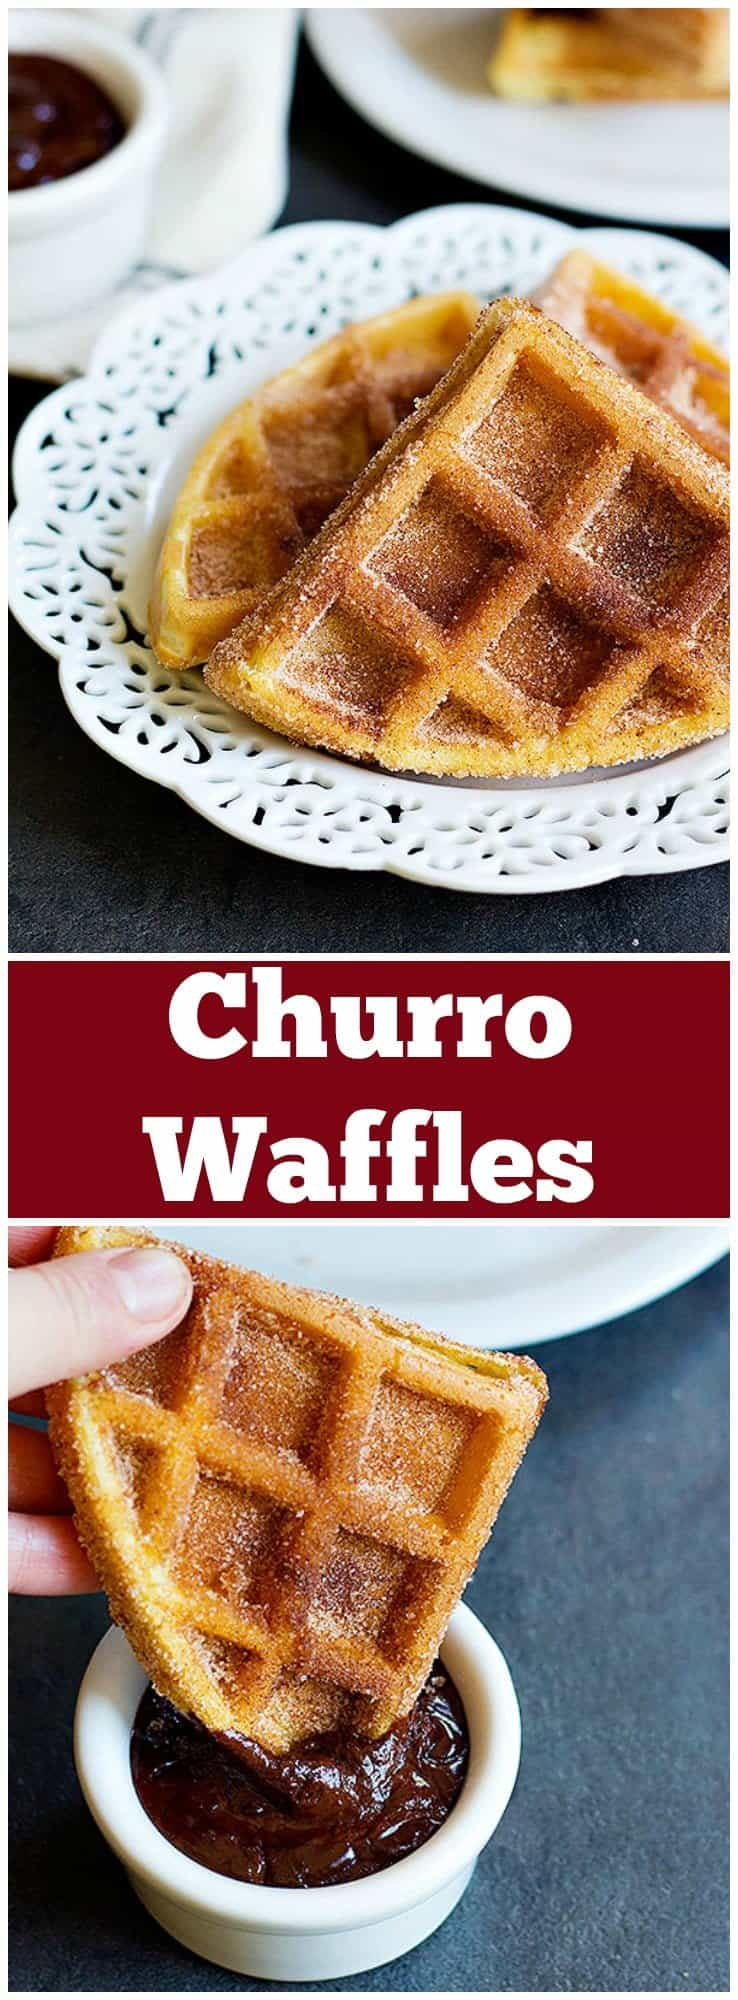 Start you mornings with a dessert-flavored breakfast. Churro Waffles are delicious fluffy waffles full of cinnamon sugar, served with some delicious chocolate!